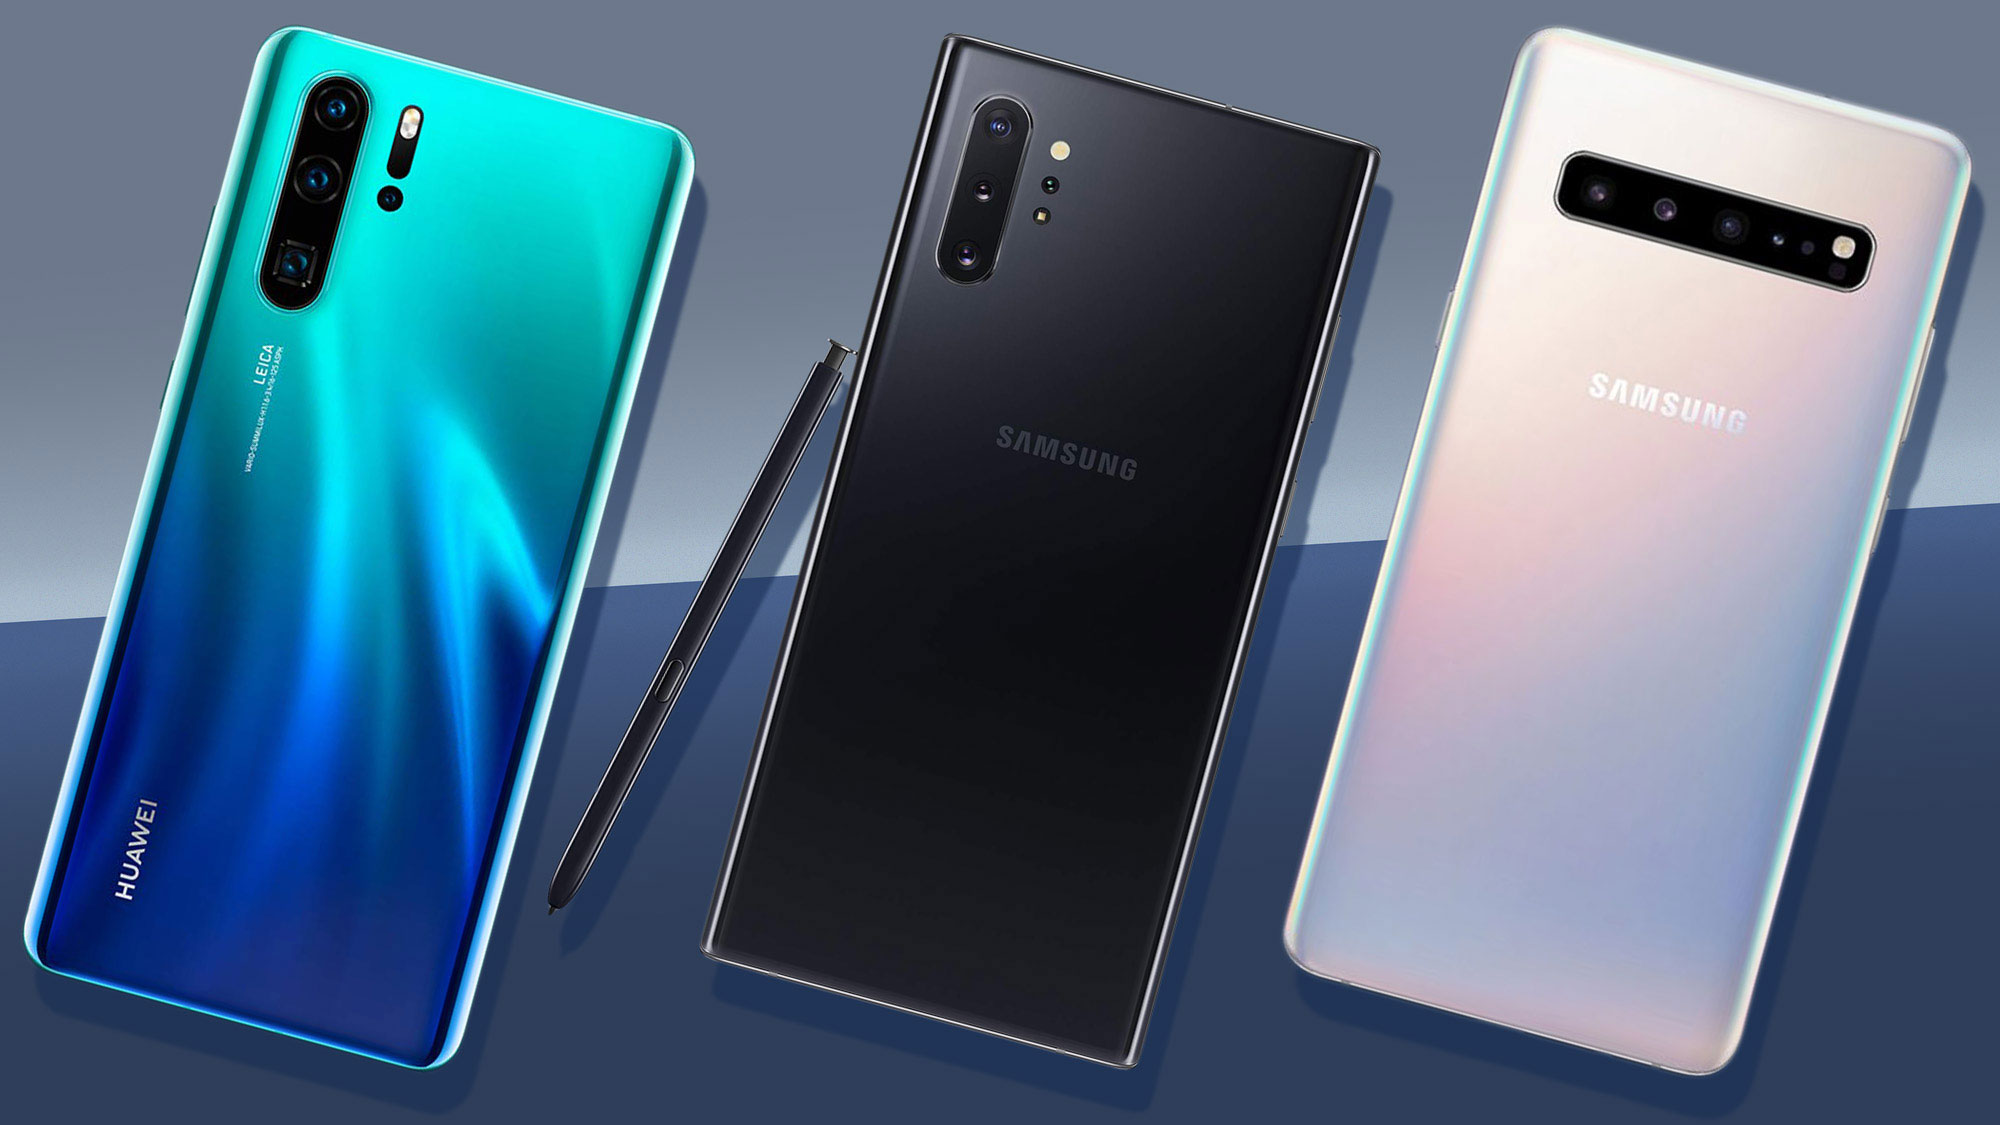 Best Android phones in the Middle East for 2019: which should you buy?